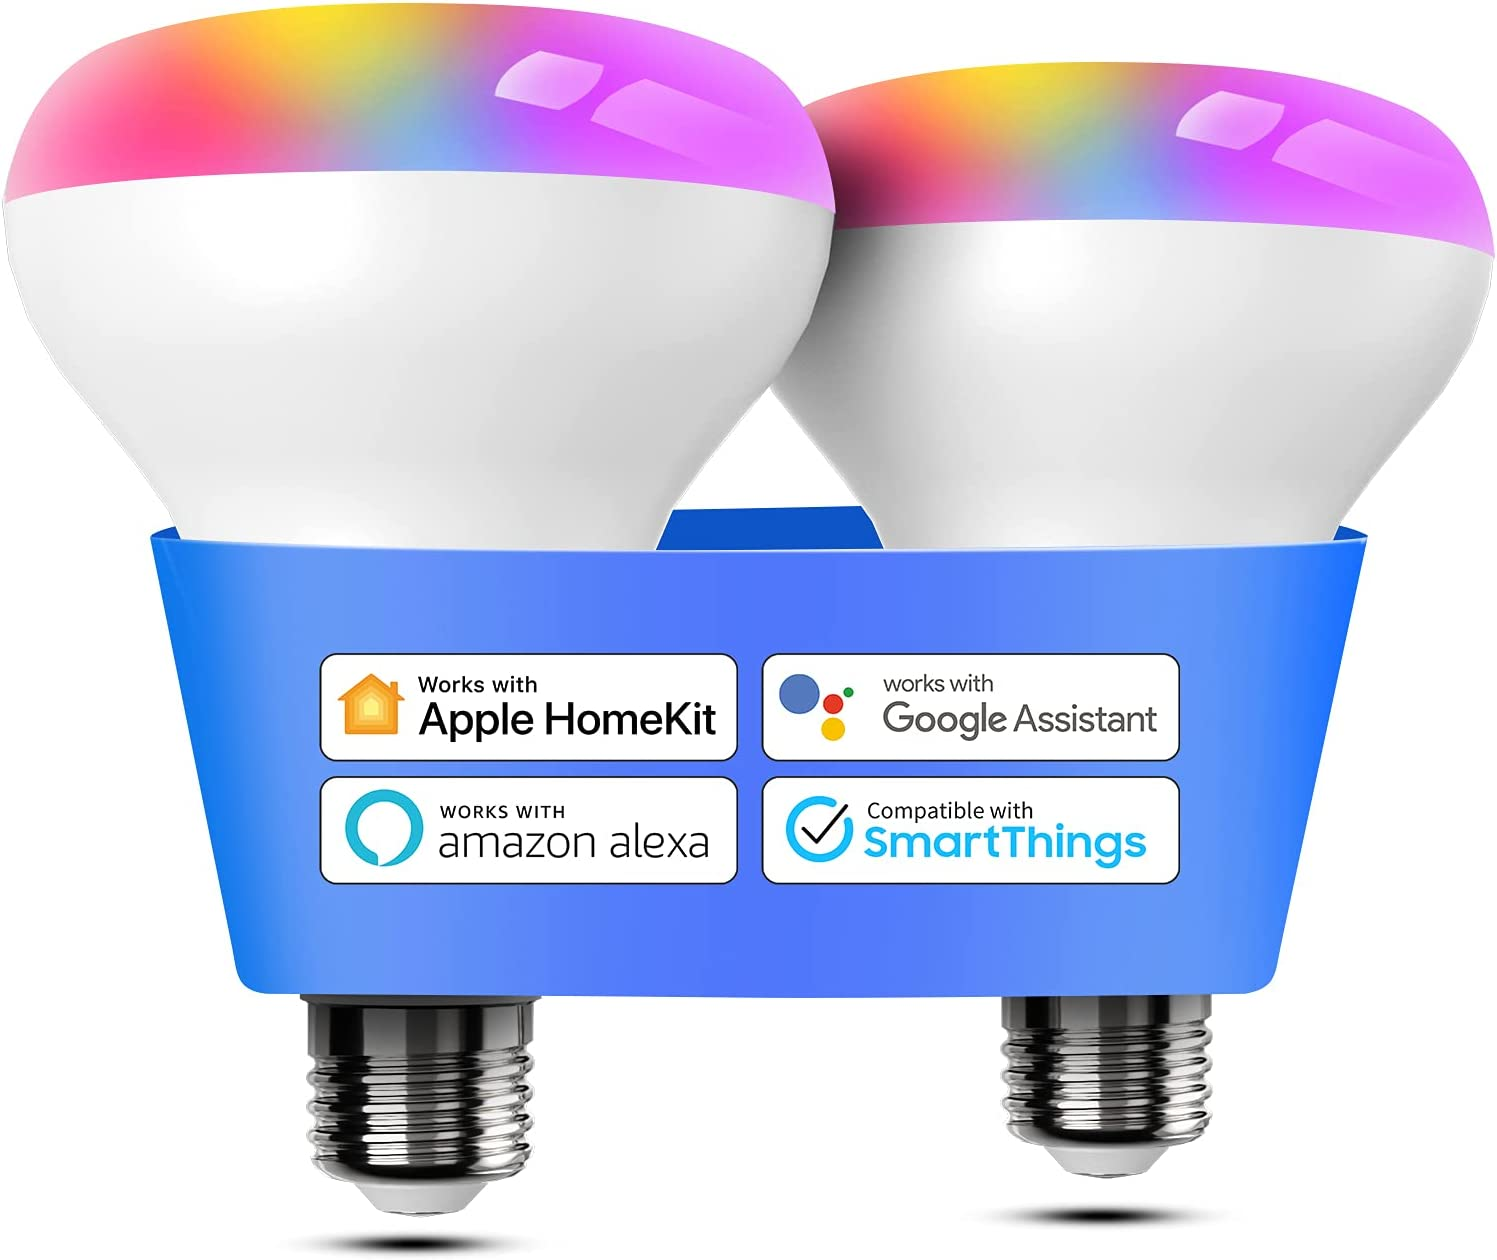 Smart Light Bulb, Meross BR30 Flood Wi-Fi LED Bulbs Compatible with Apple HomeKit, Alexa, Google Assistant and SmartThings, Dimmable E26 Multicolor 2700K-6500K RGB, 1300 Lumens 100W Equivalent, 2 Pack